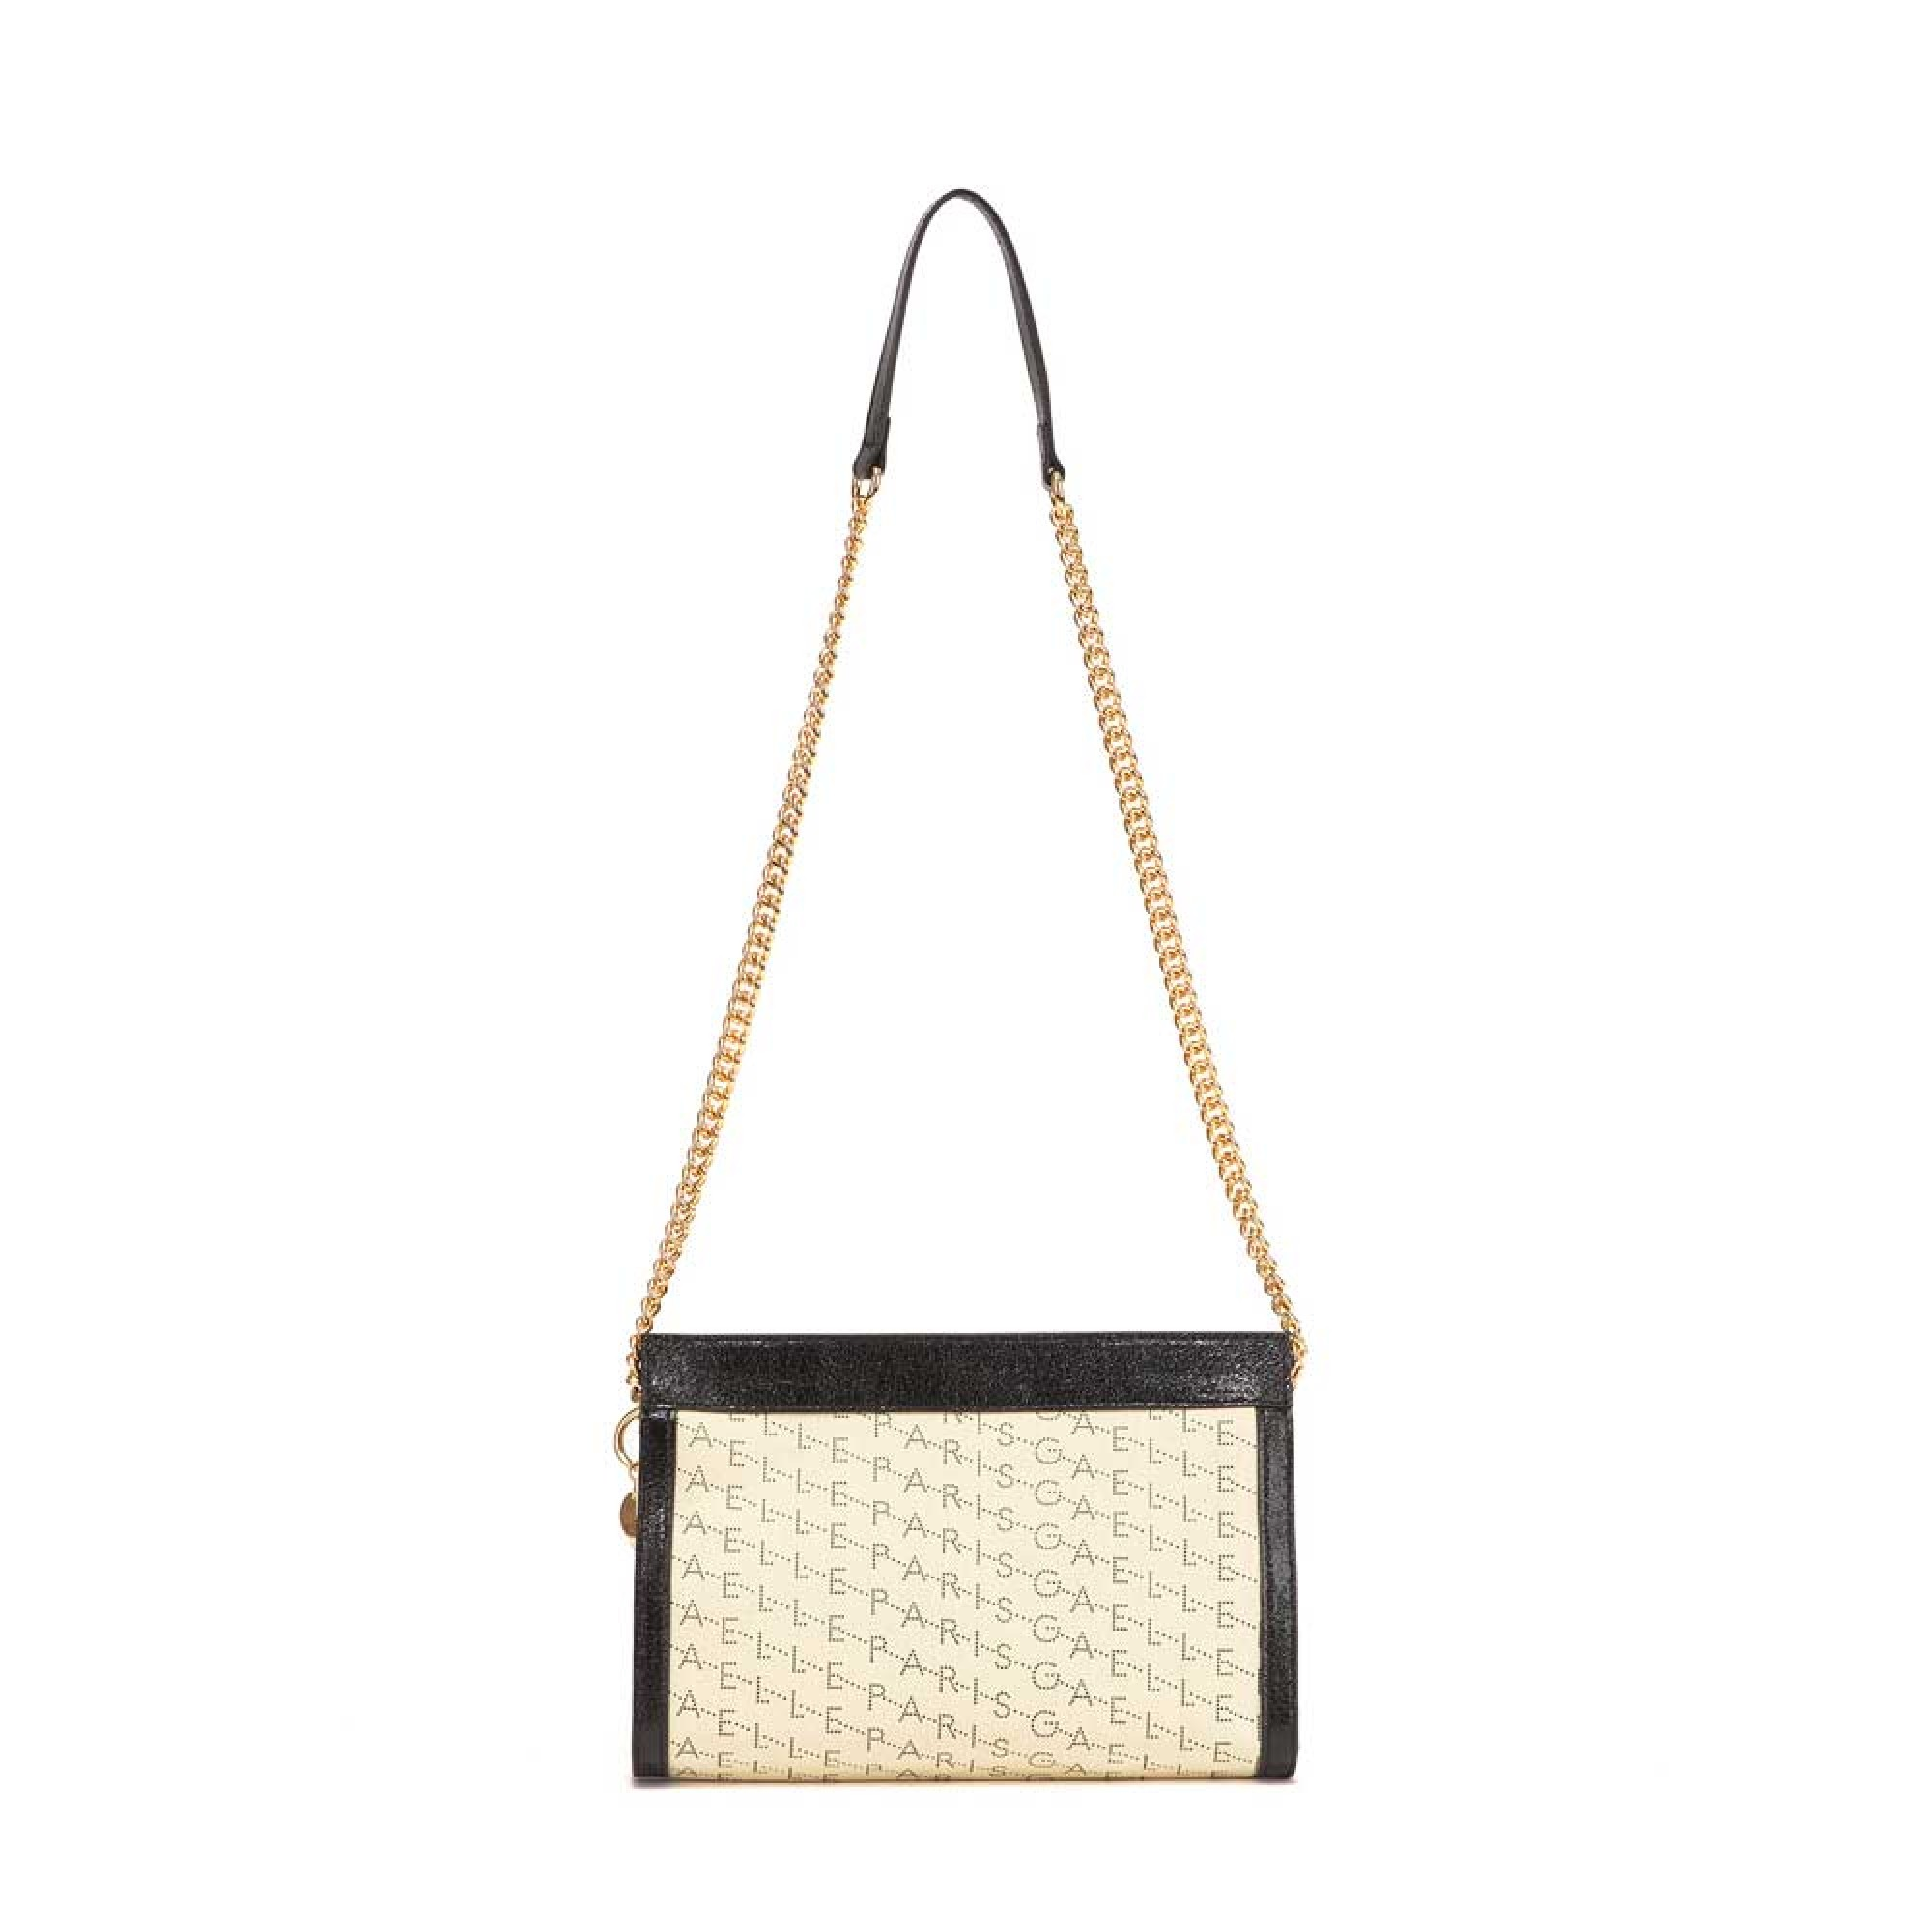 SHOULDER BAG - GBDA1460 - GAELLE PARIS